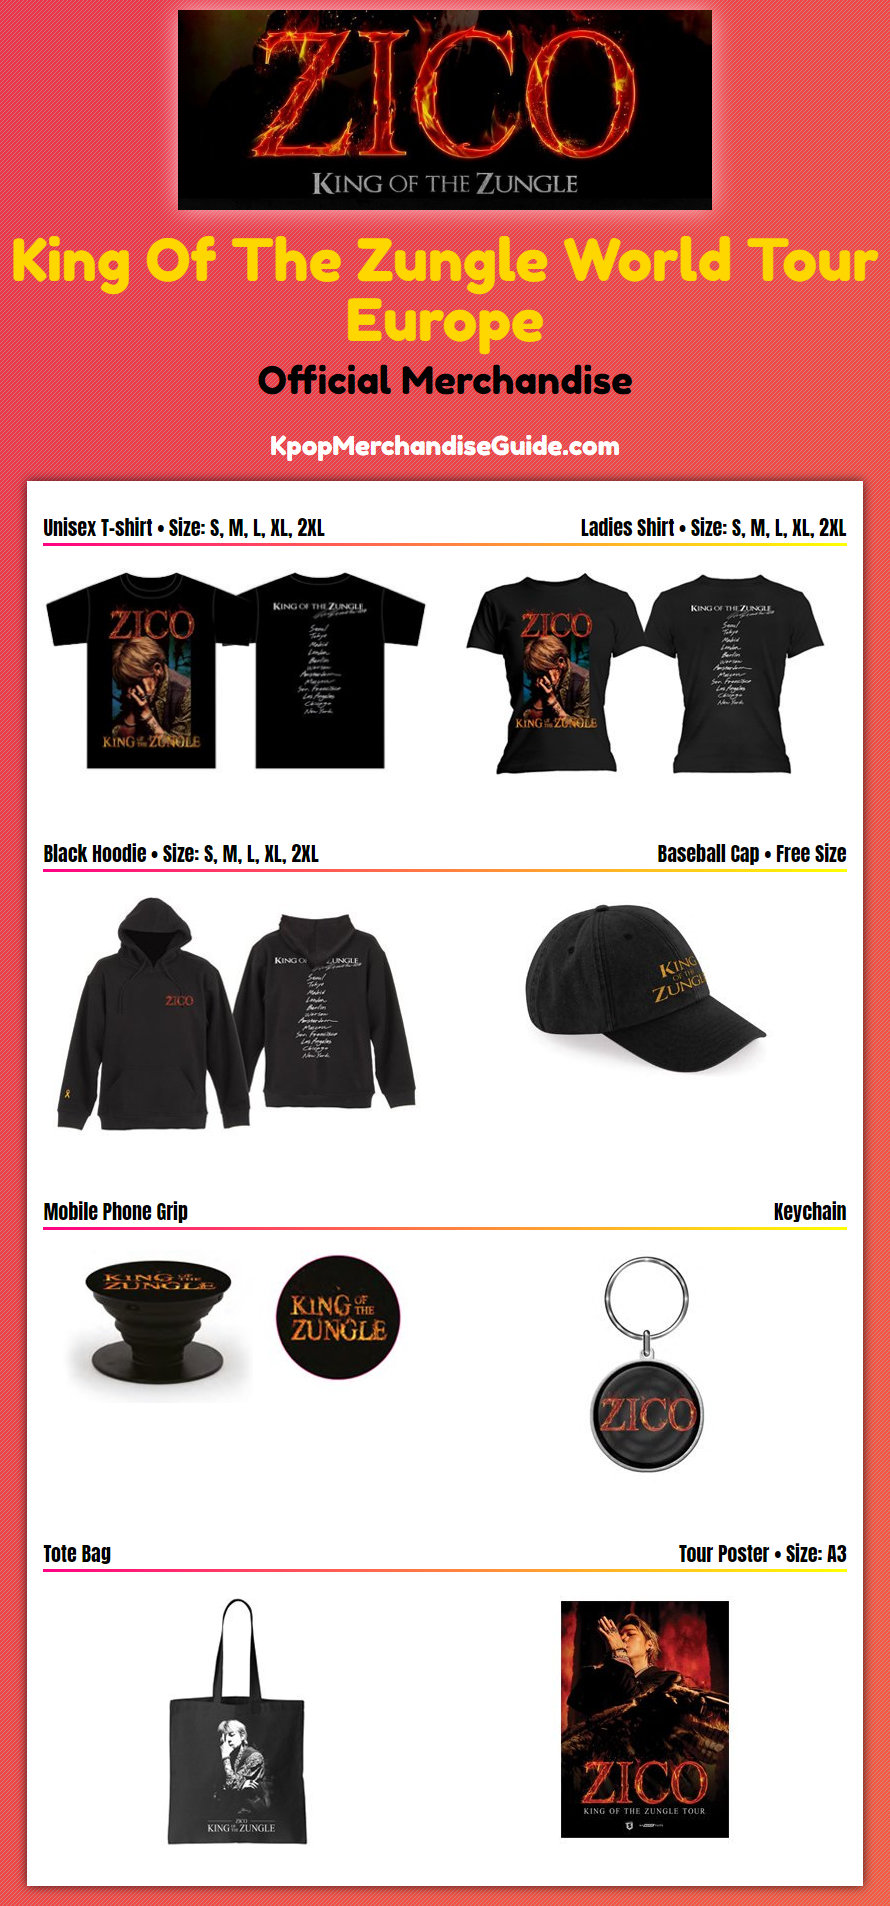 King Of The Zungle Concert Tour In Europe Merchandise